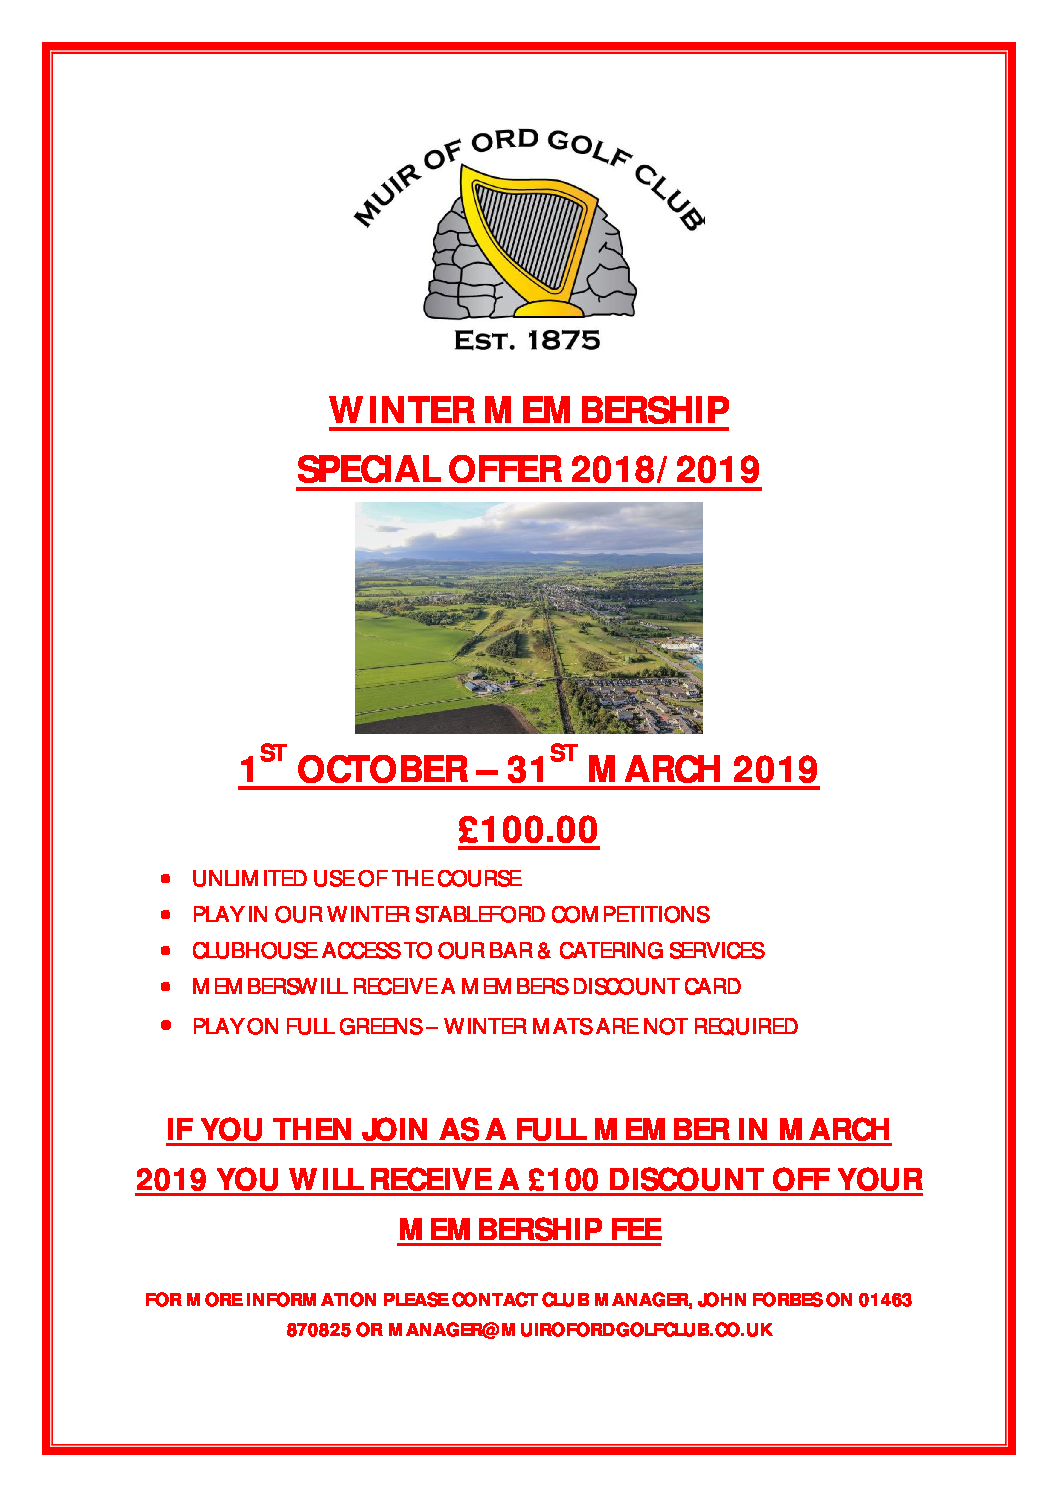 Winter Membership 2018